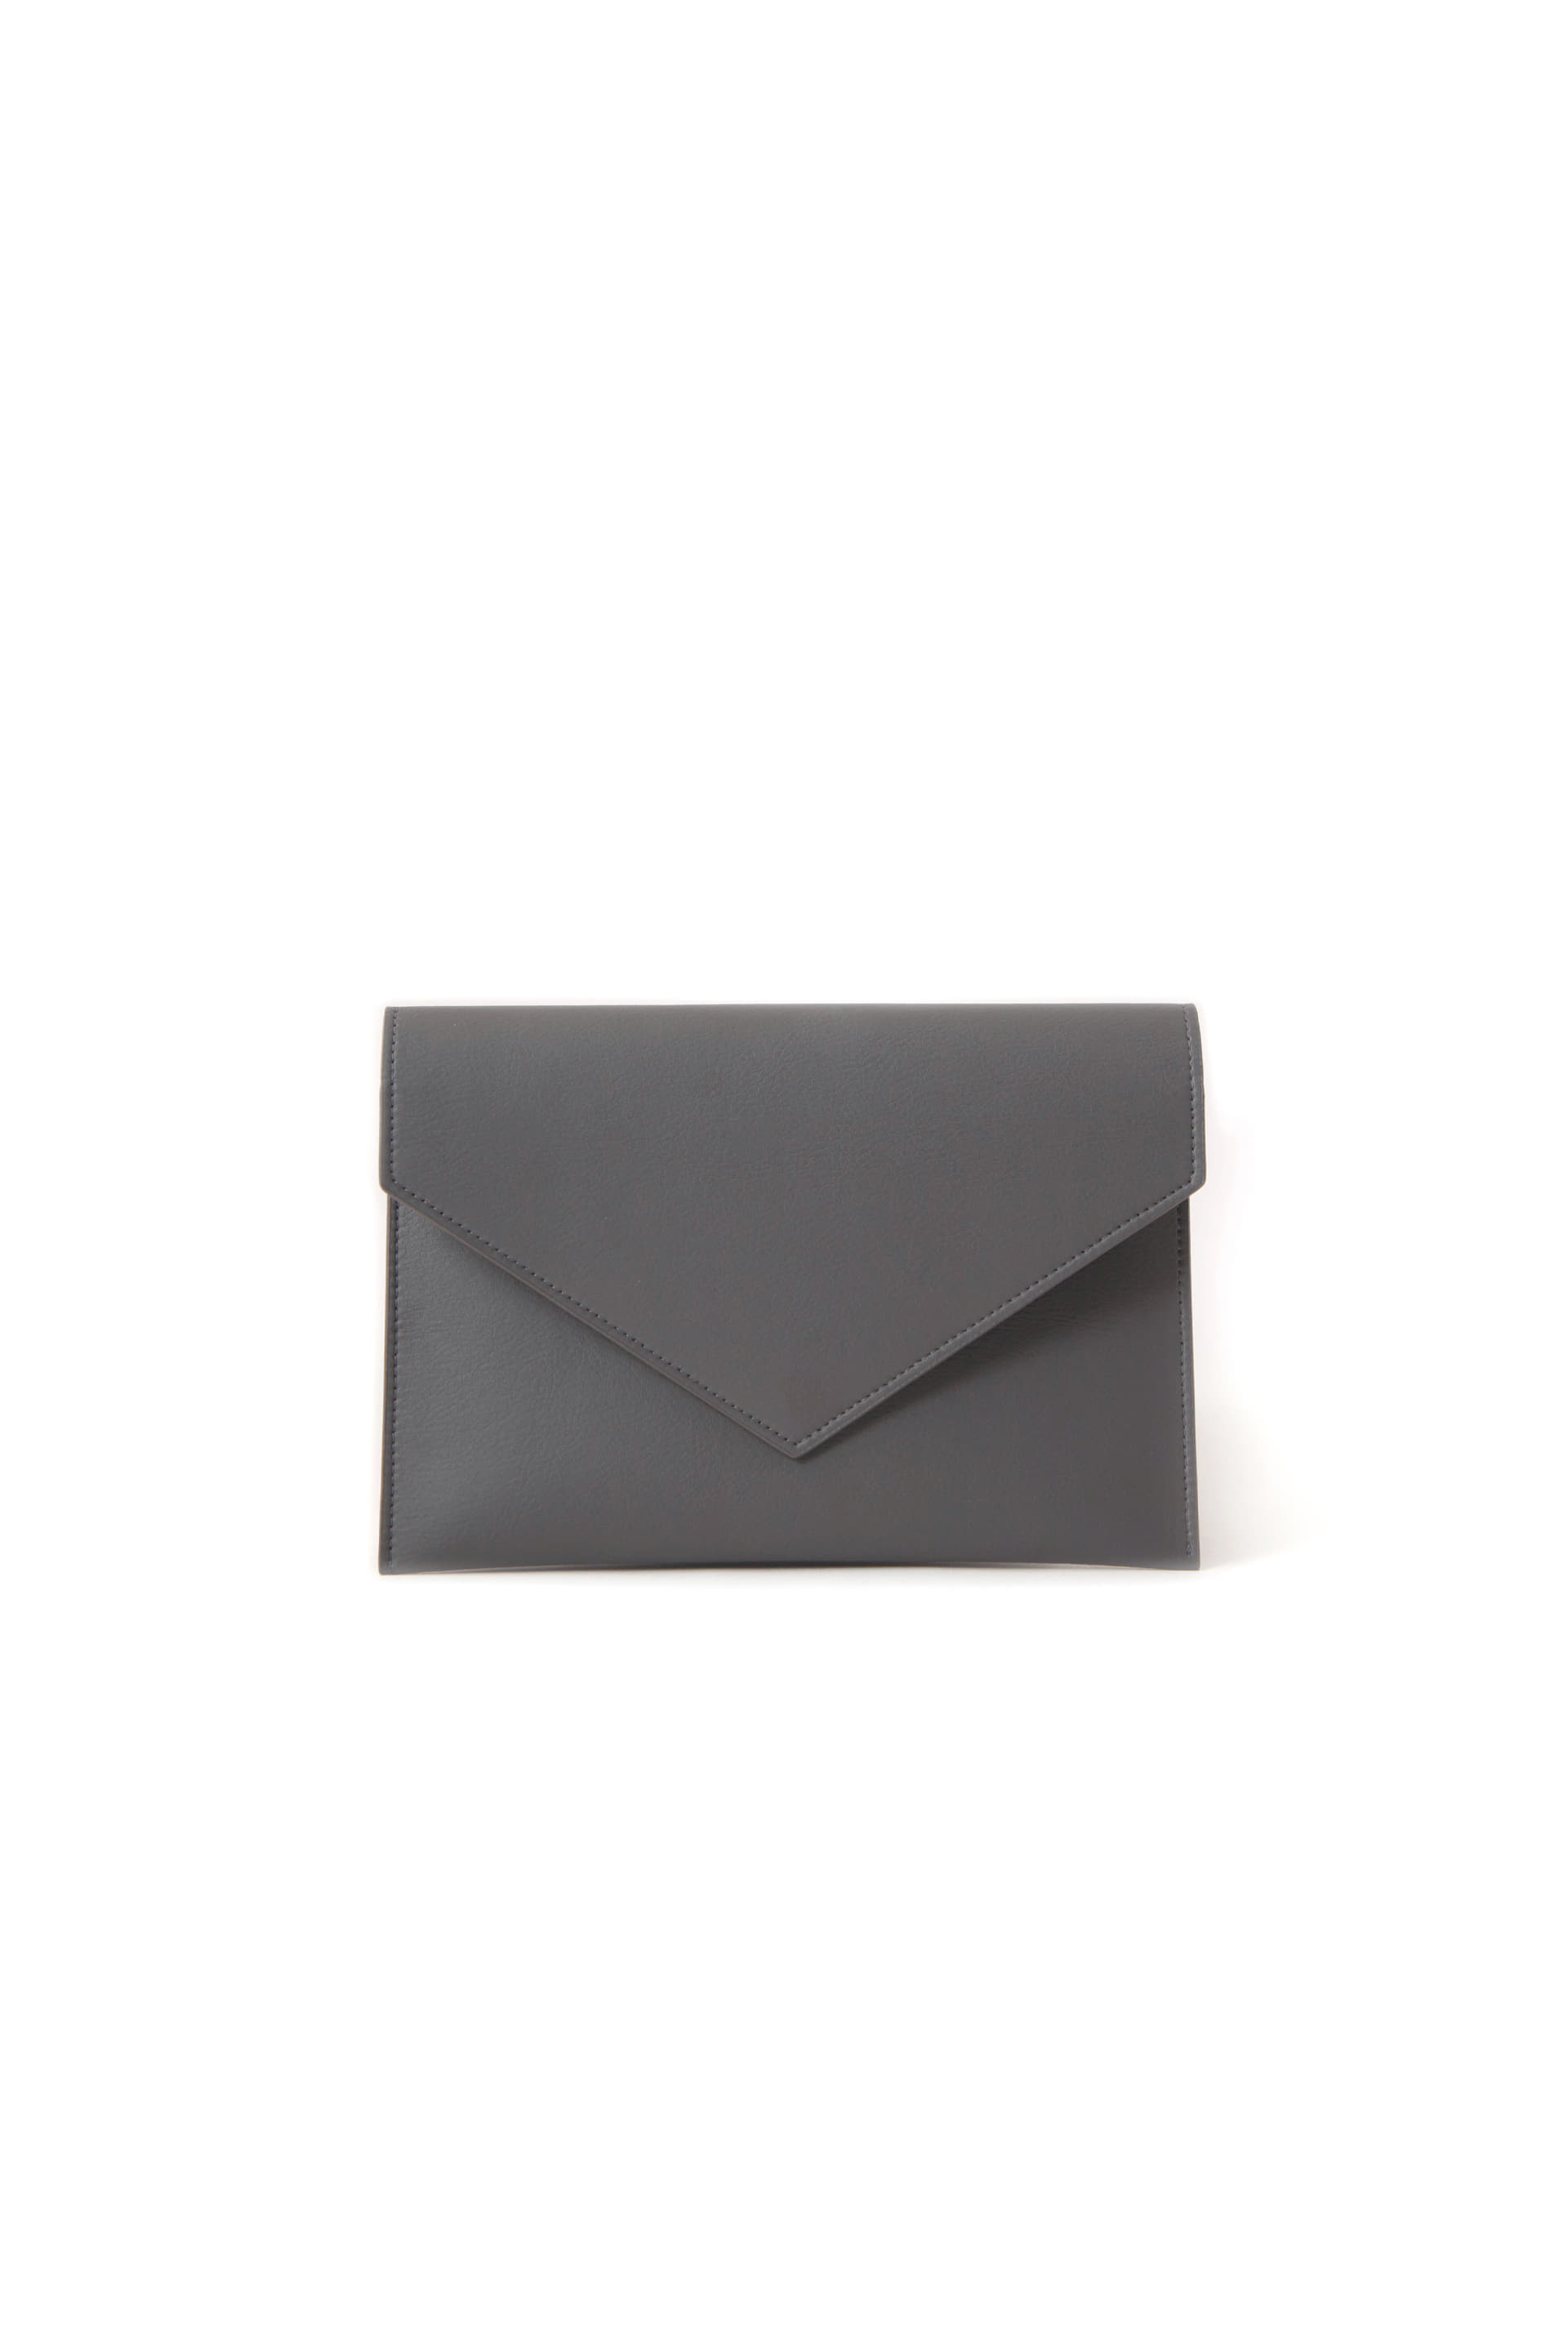 COSMETIC CLUTCH 21 Dark Grey